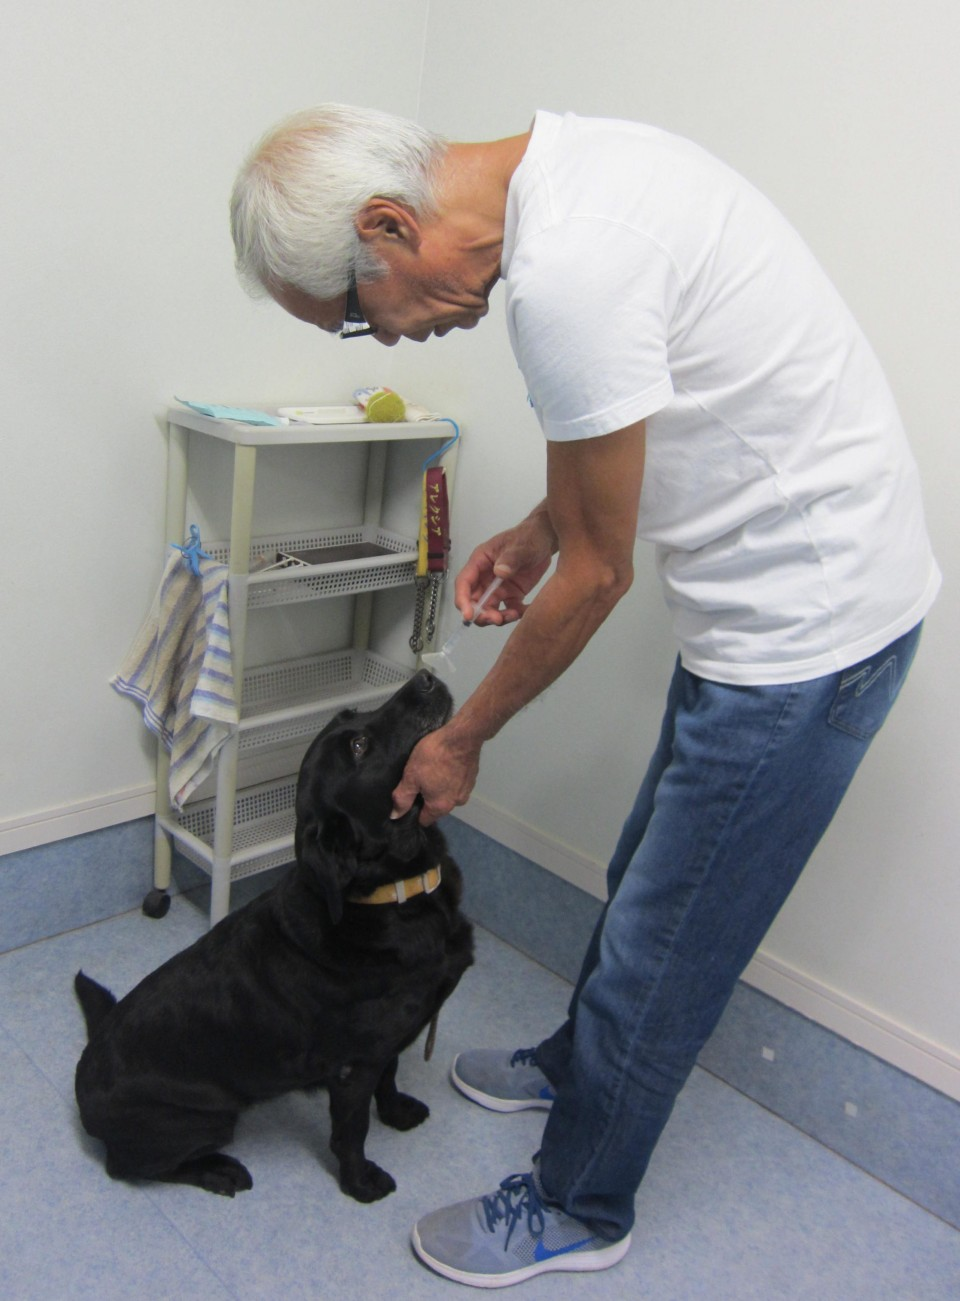 Sniffer dog cancer tests yield results but require trainers